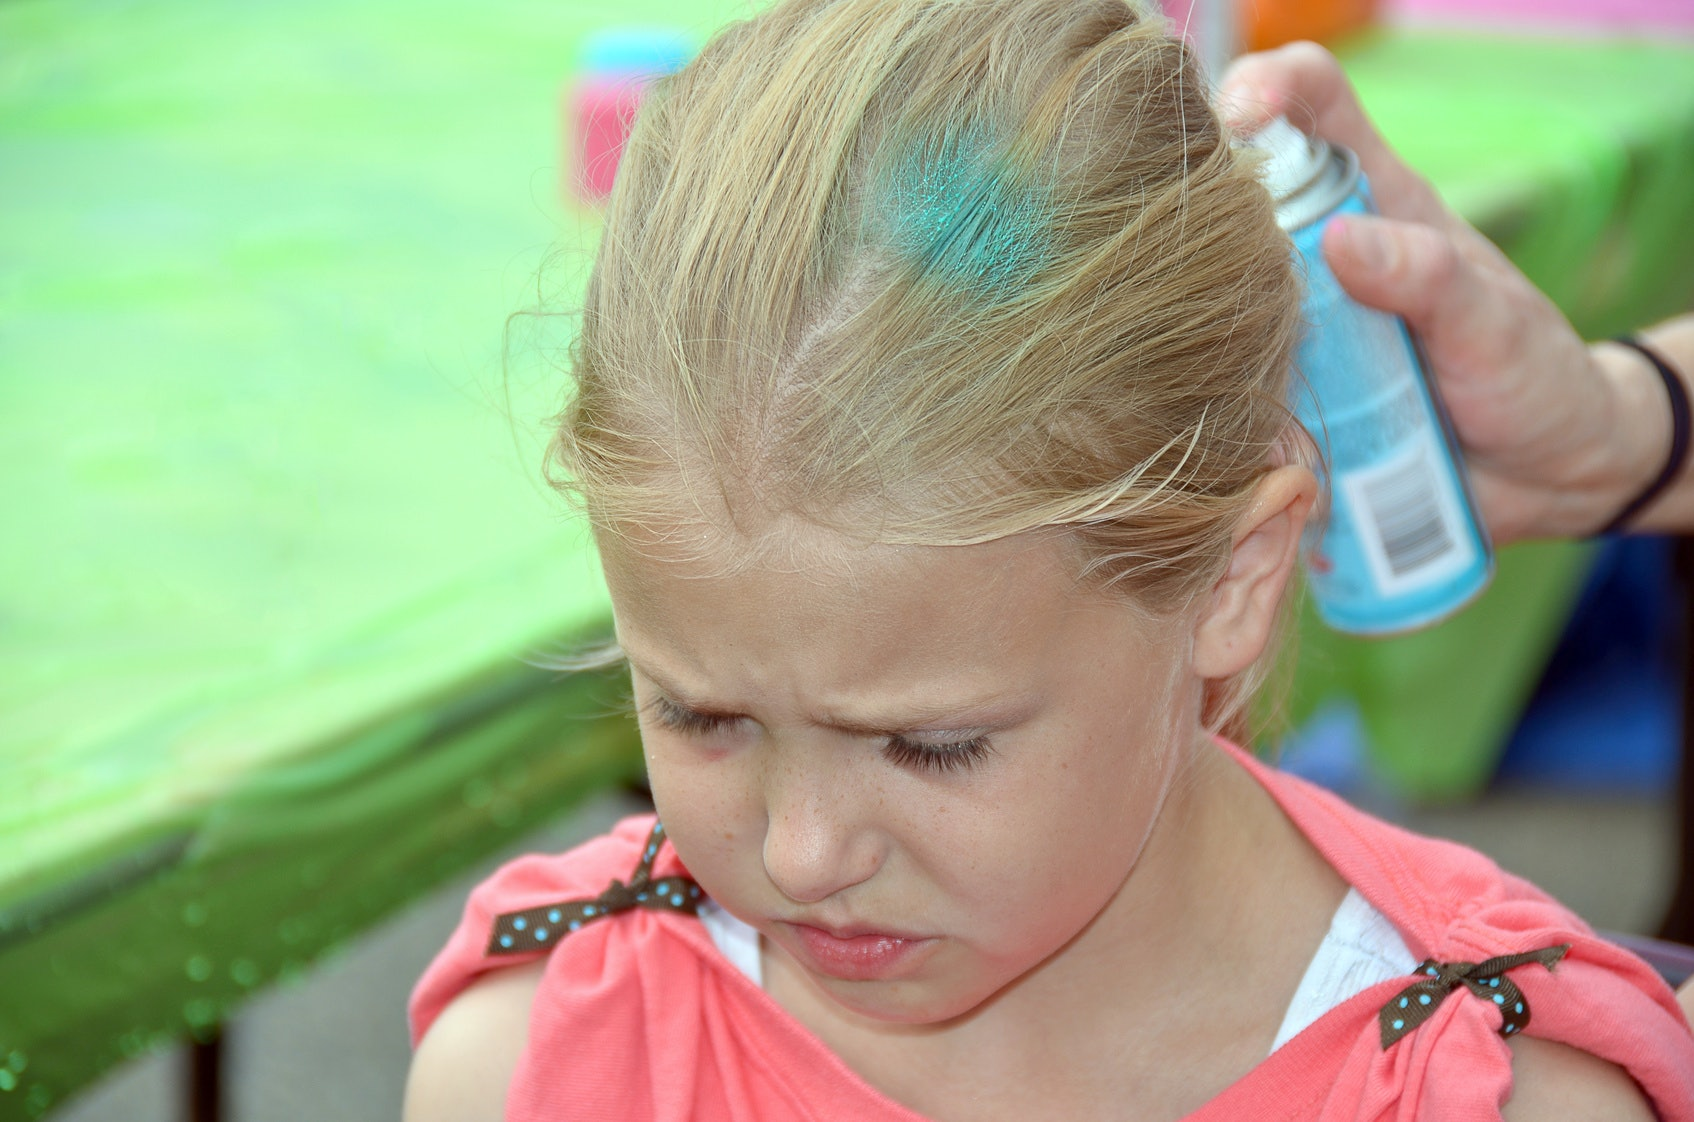 5 Non-Toxic, Safe Halloween Hair Dye For Kids That Still Looks Amazing